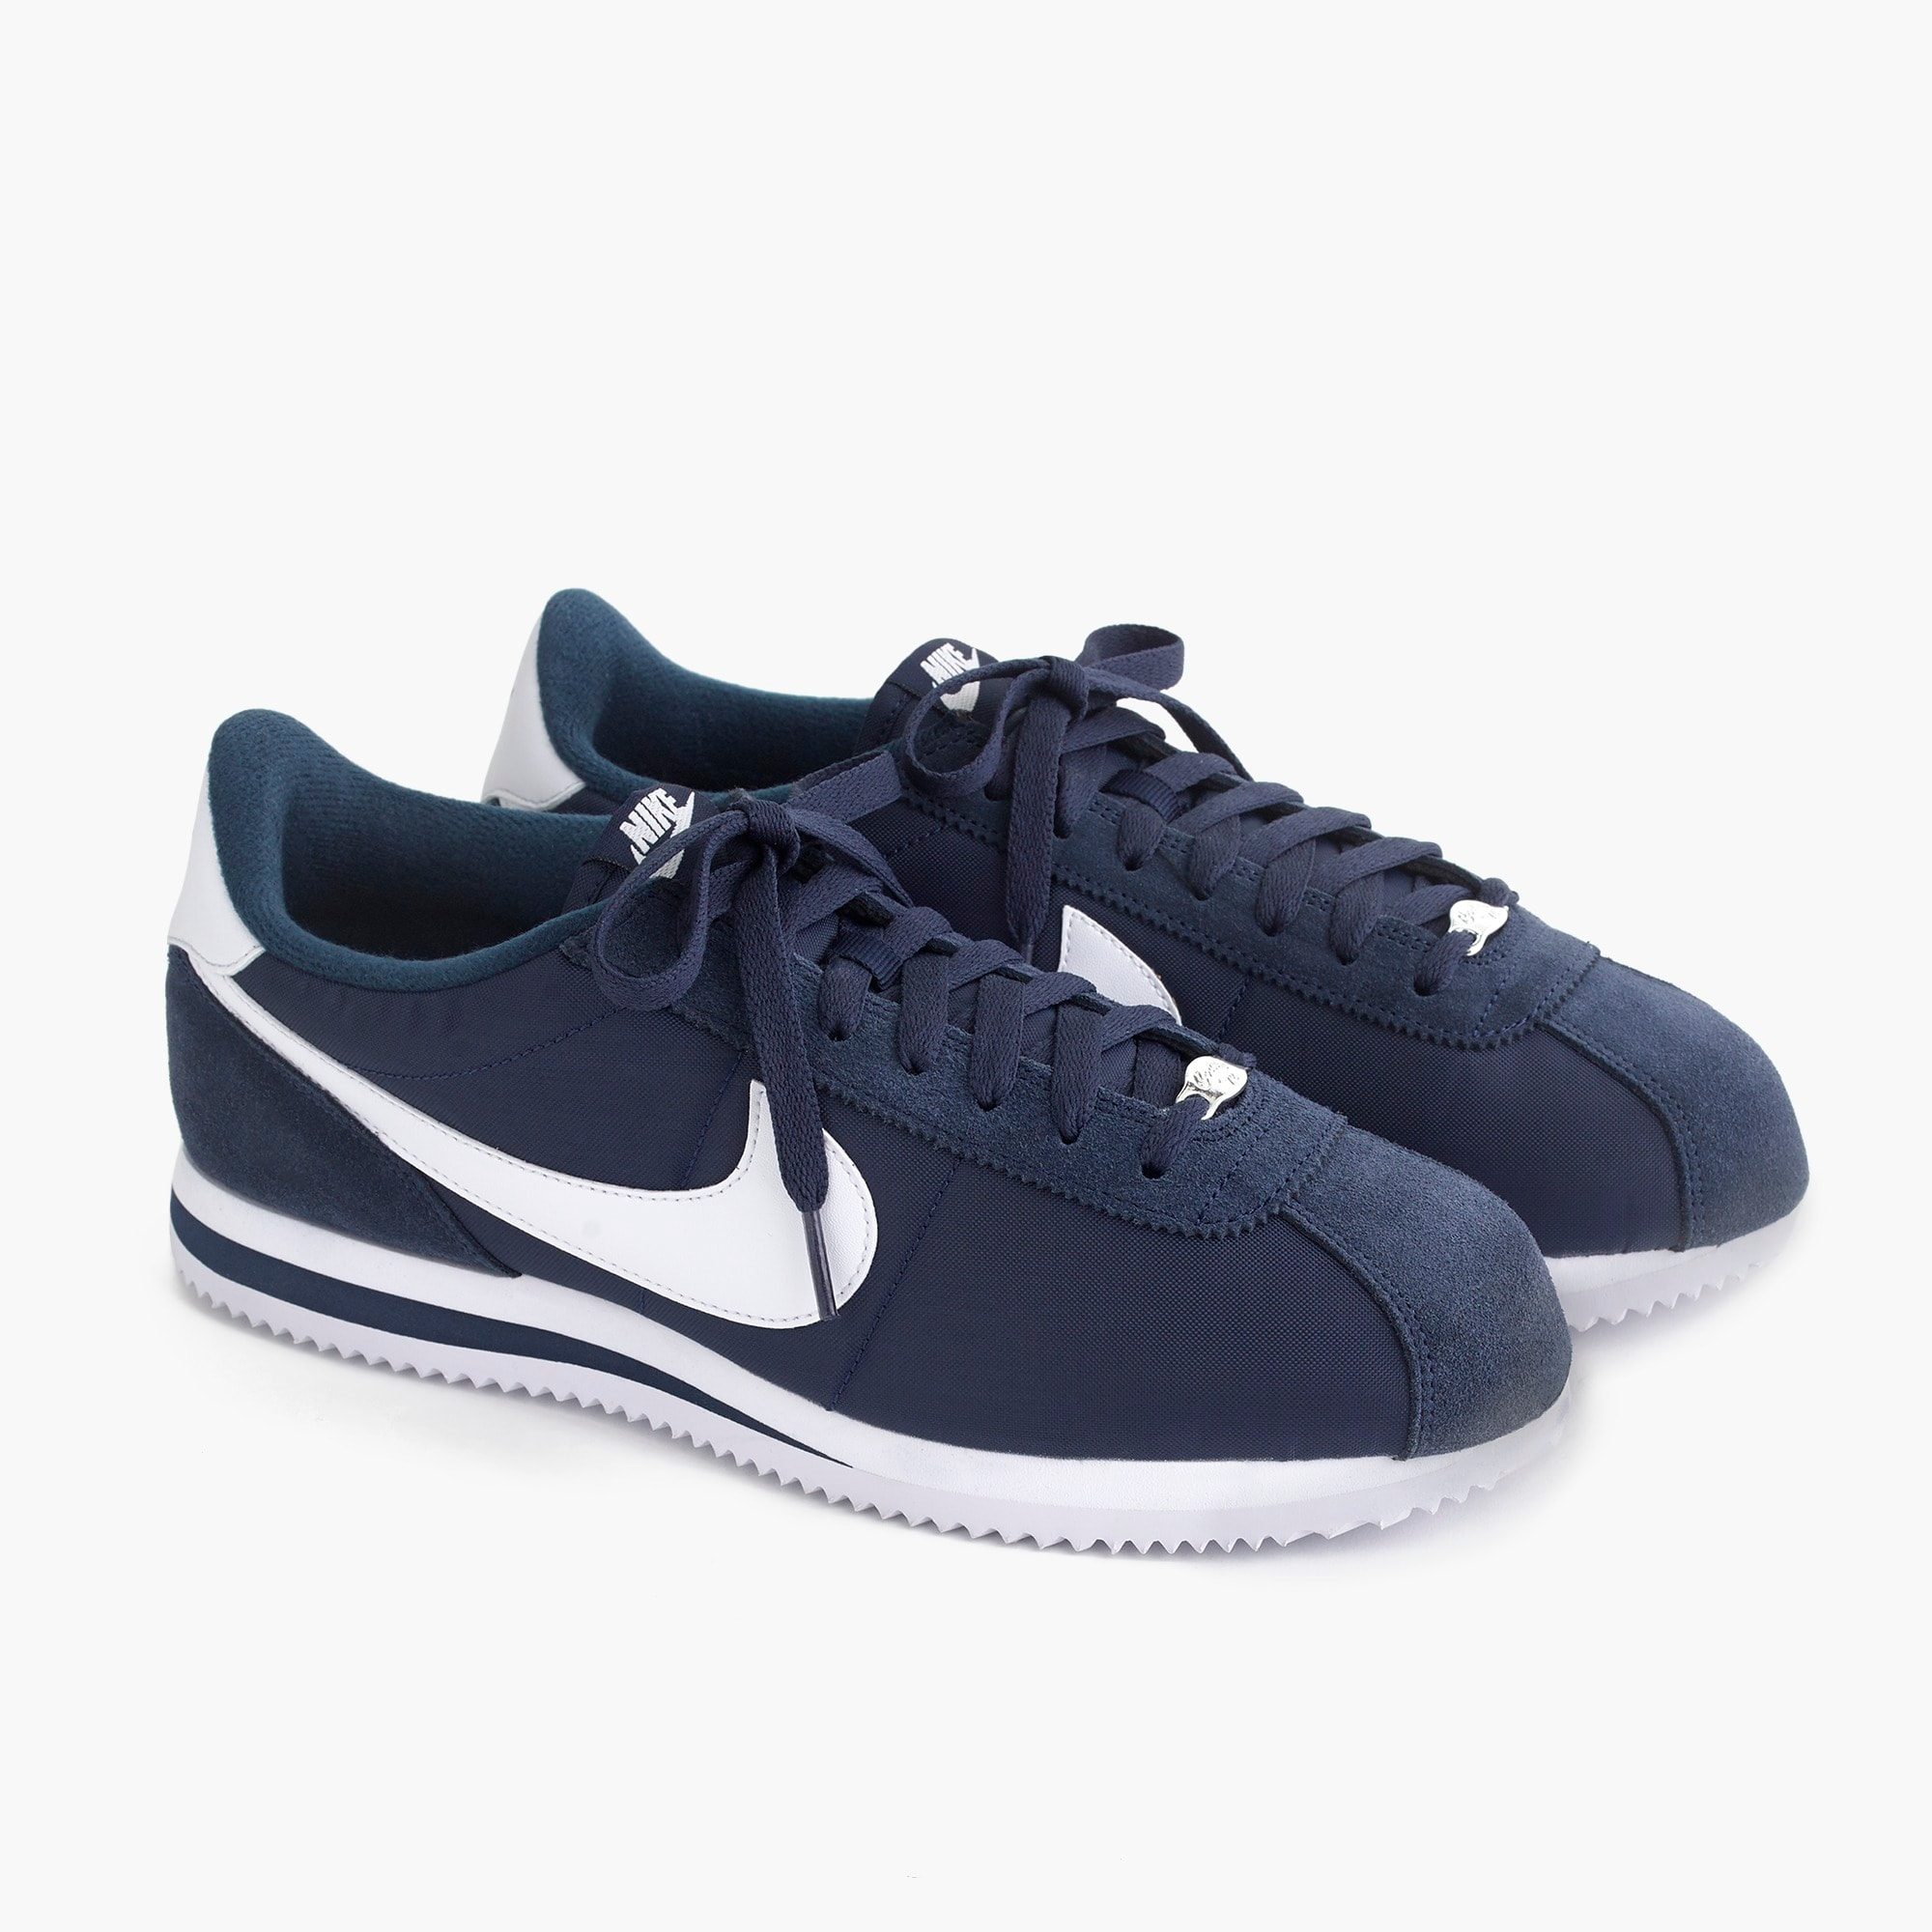 mens Nike® Cortez sneakers in nylon